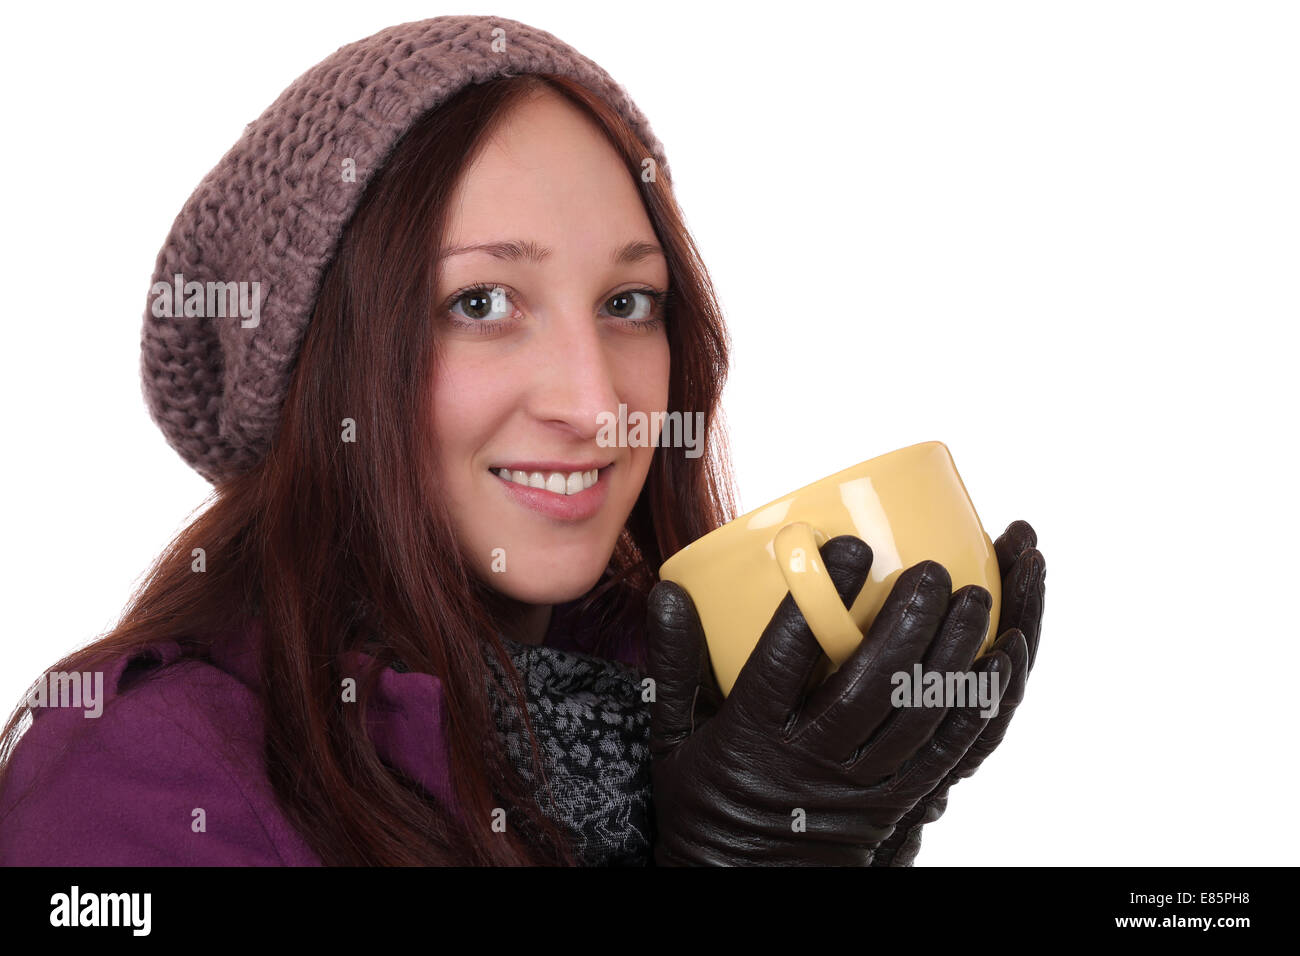 b5c9b0a238a1 Drinking Gloves Glove Stock Photos   Drinking Gloves Glove Stock ...